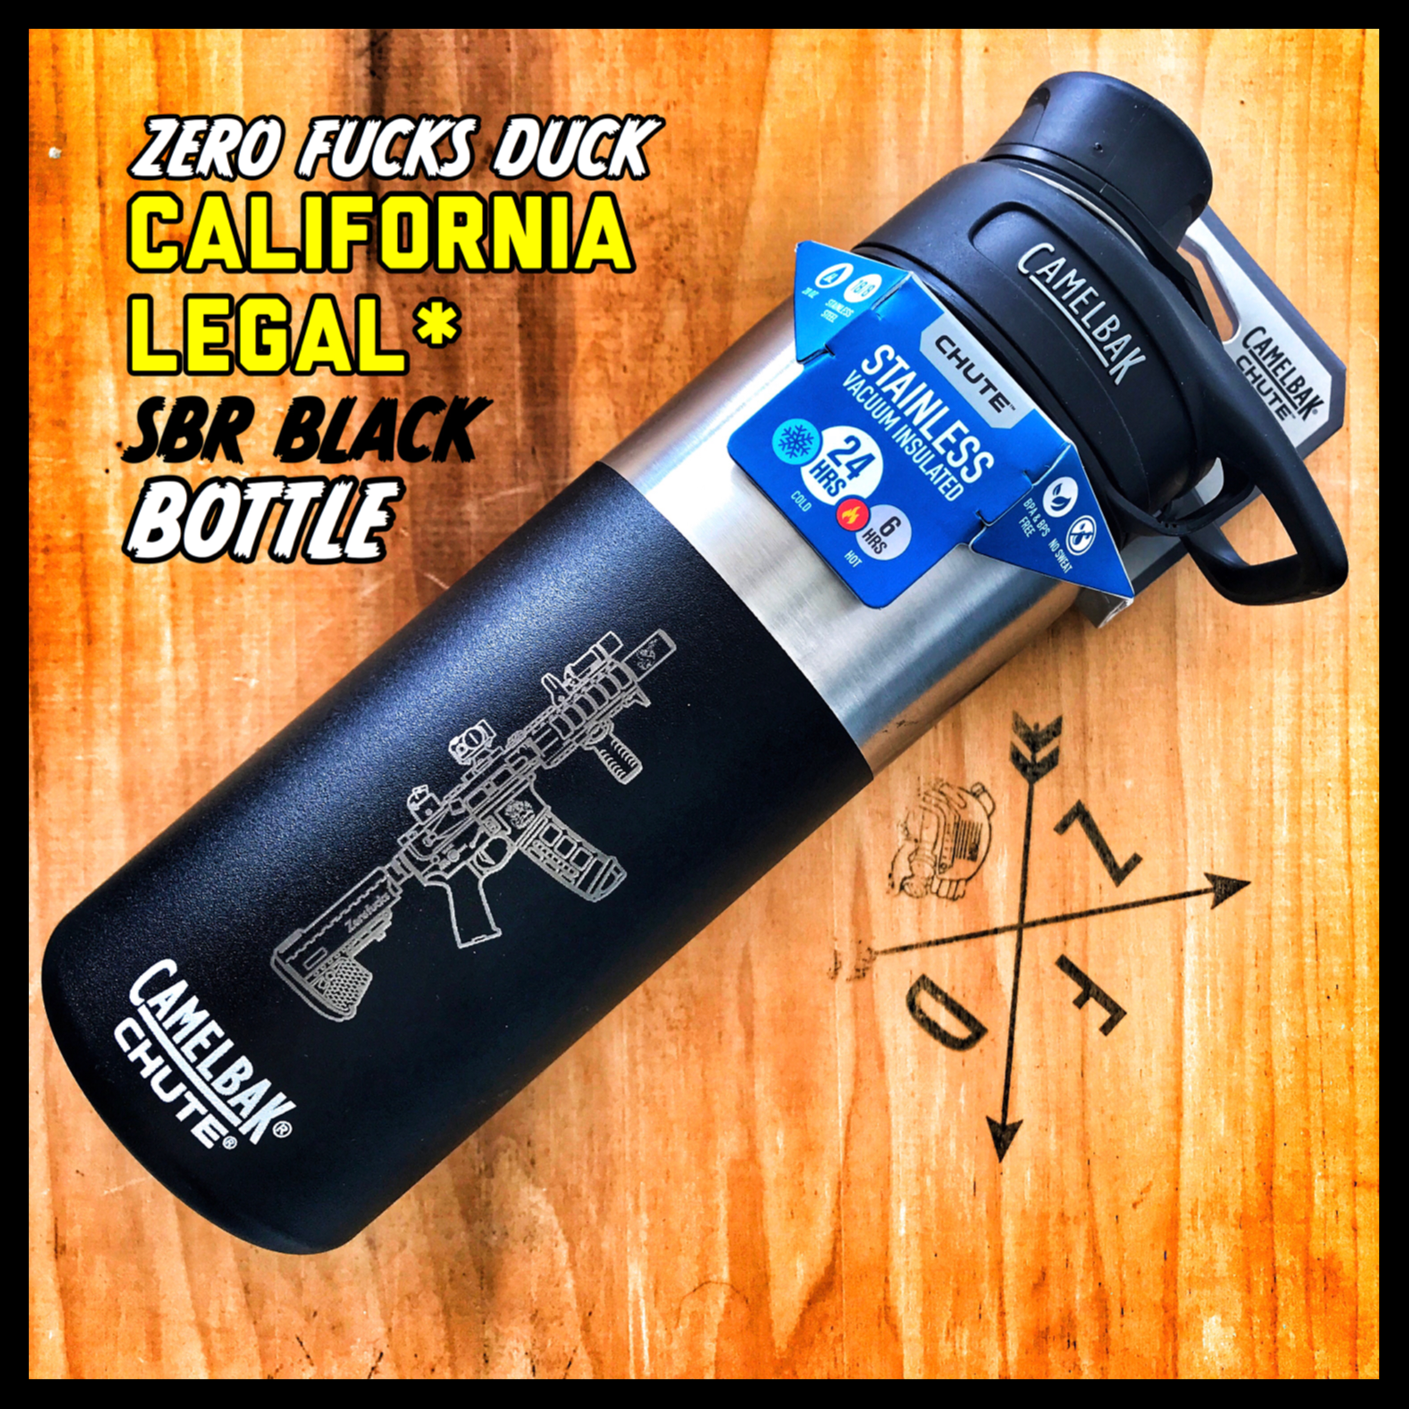 Zero Fucks Duck Black SBR Camelbak Bottle